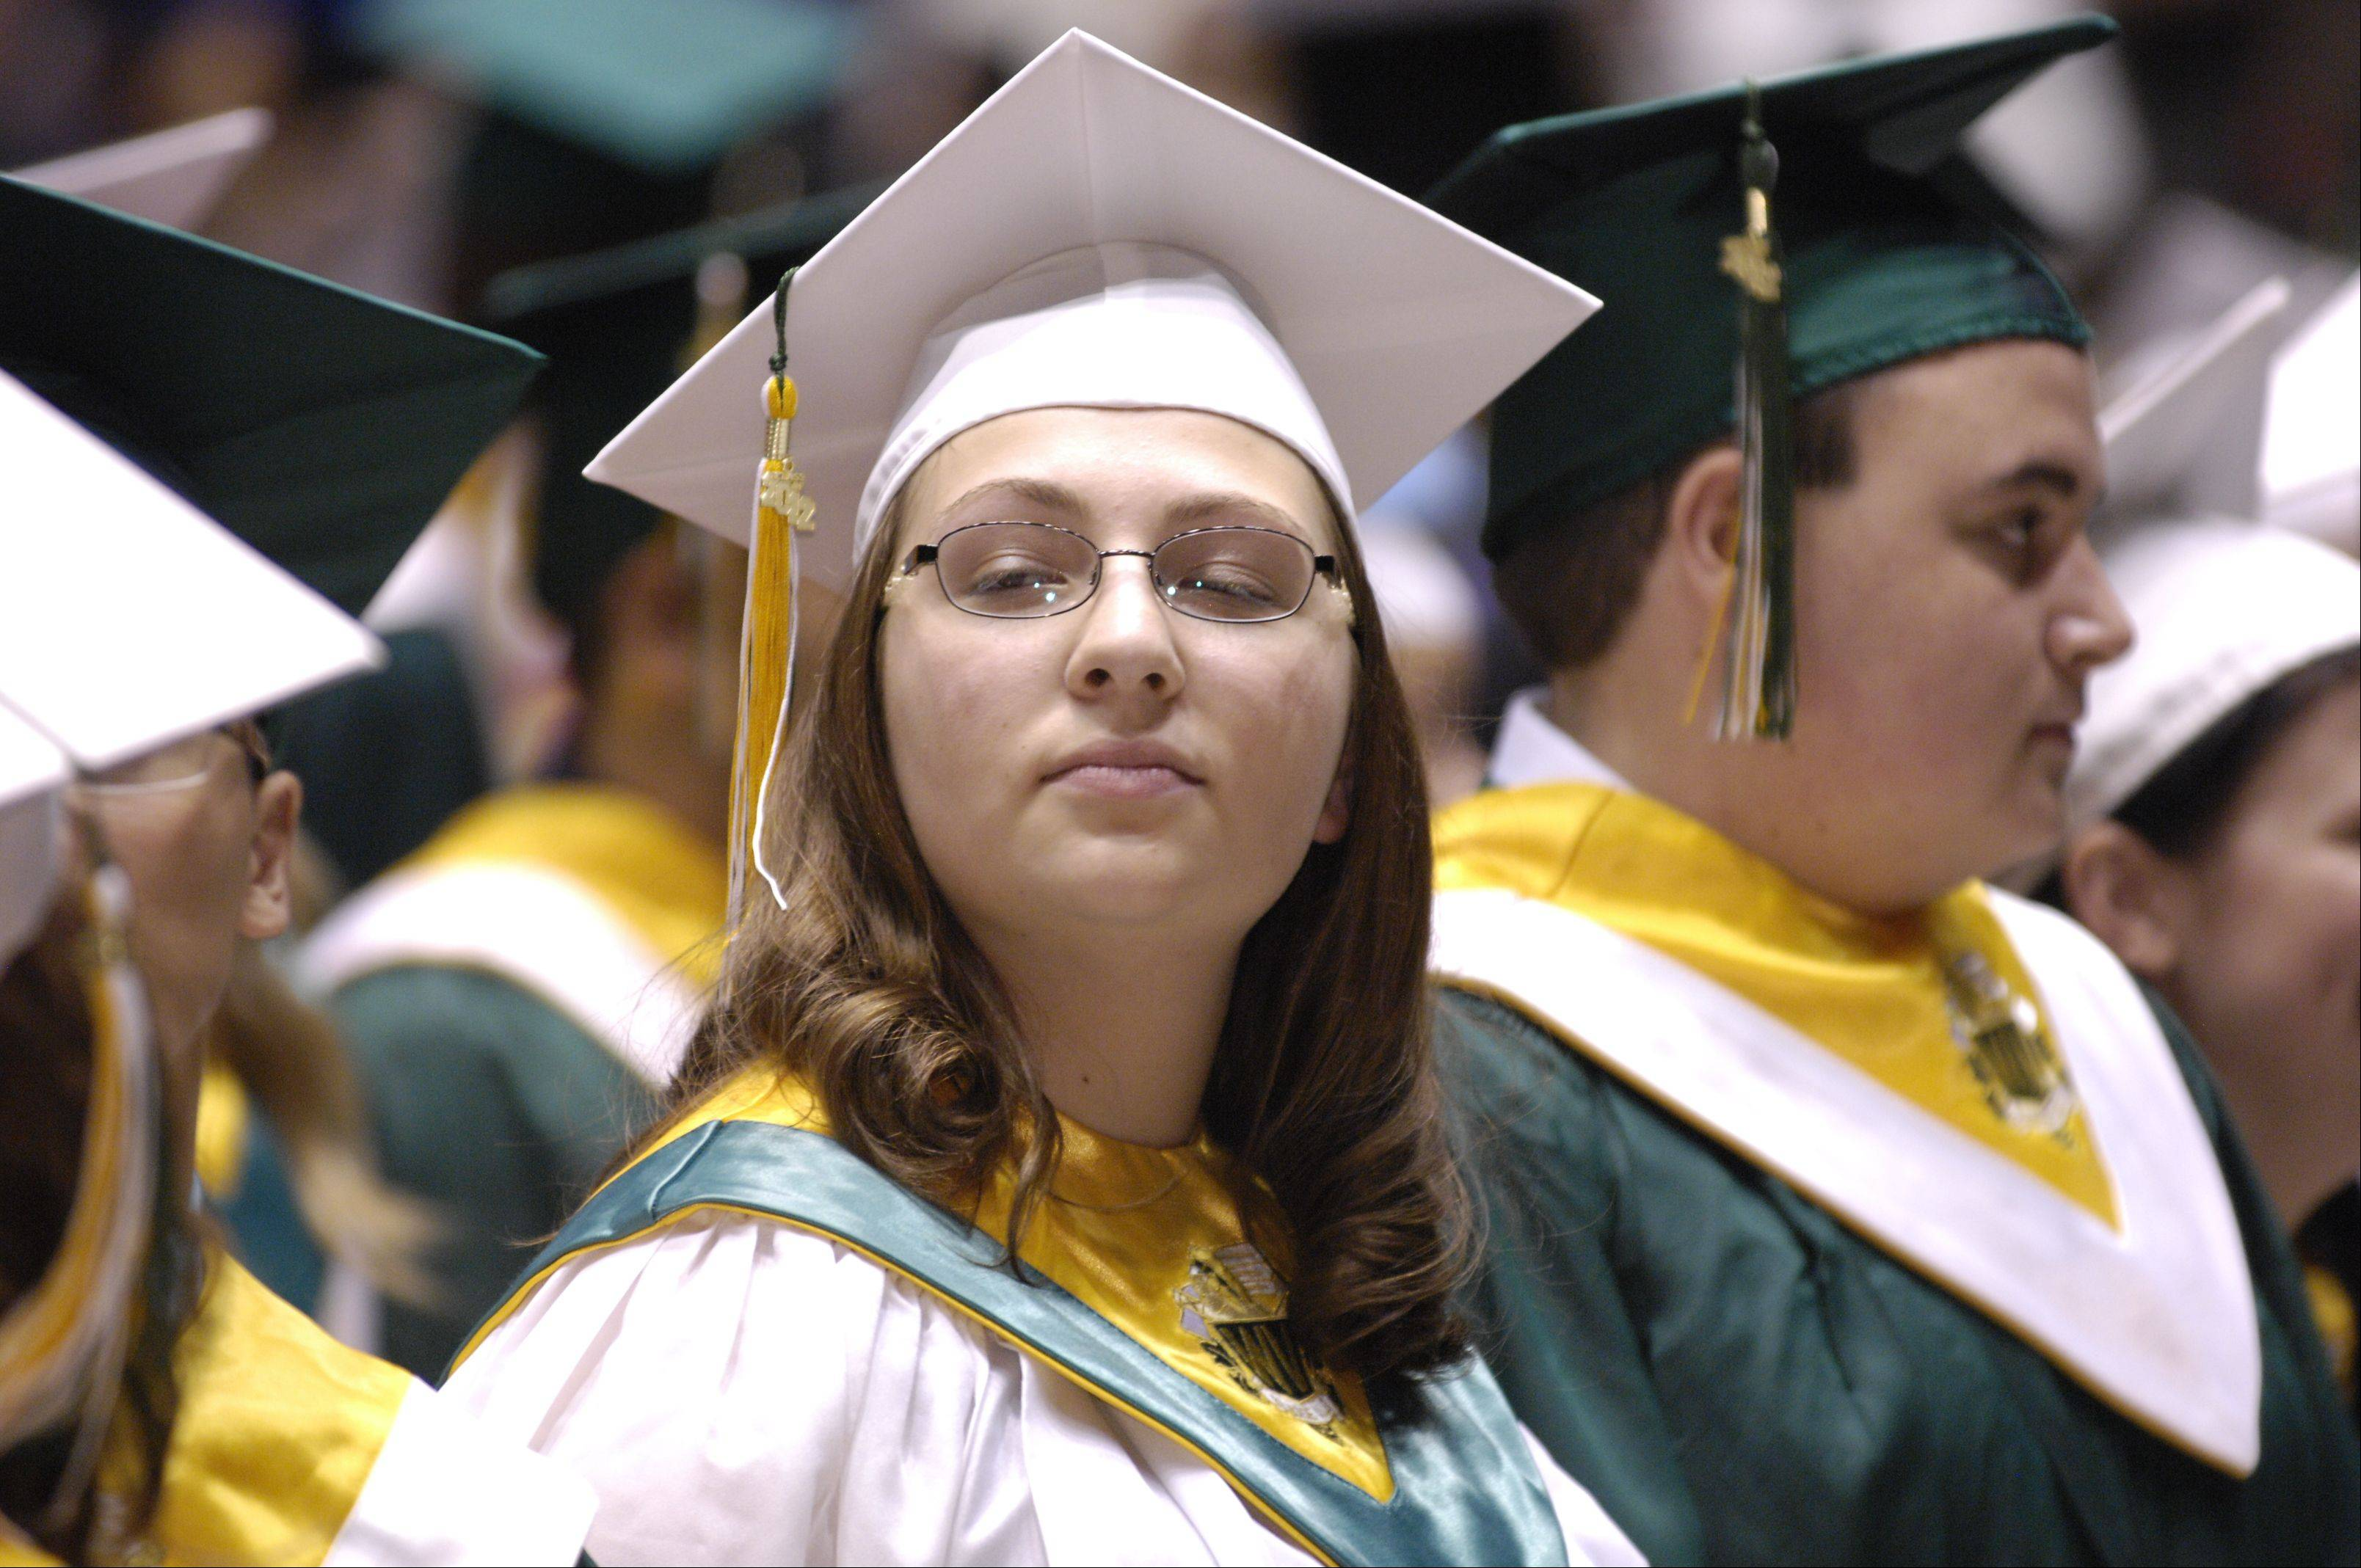 Waubonsie Valley High School held its graduation Sunday in DeKalb at the NIU Convocation Center.